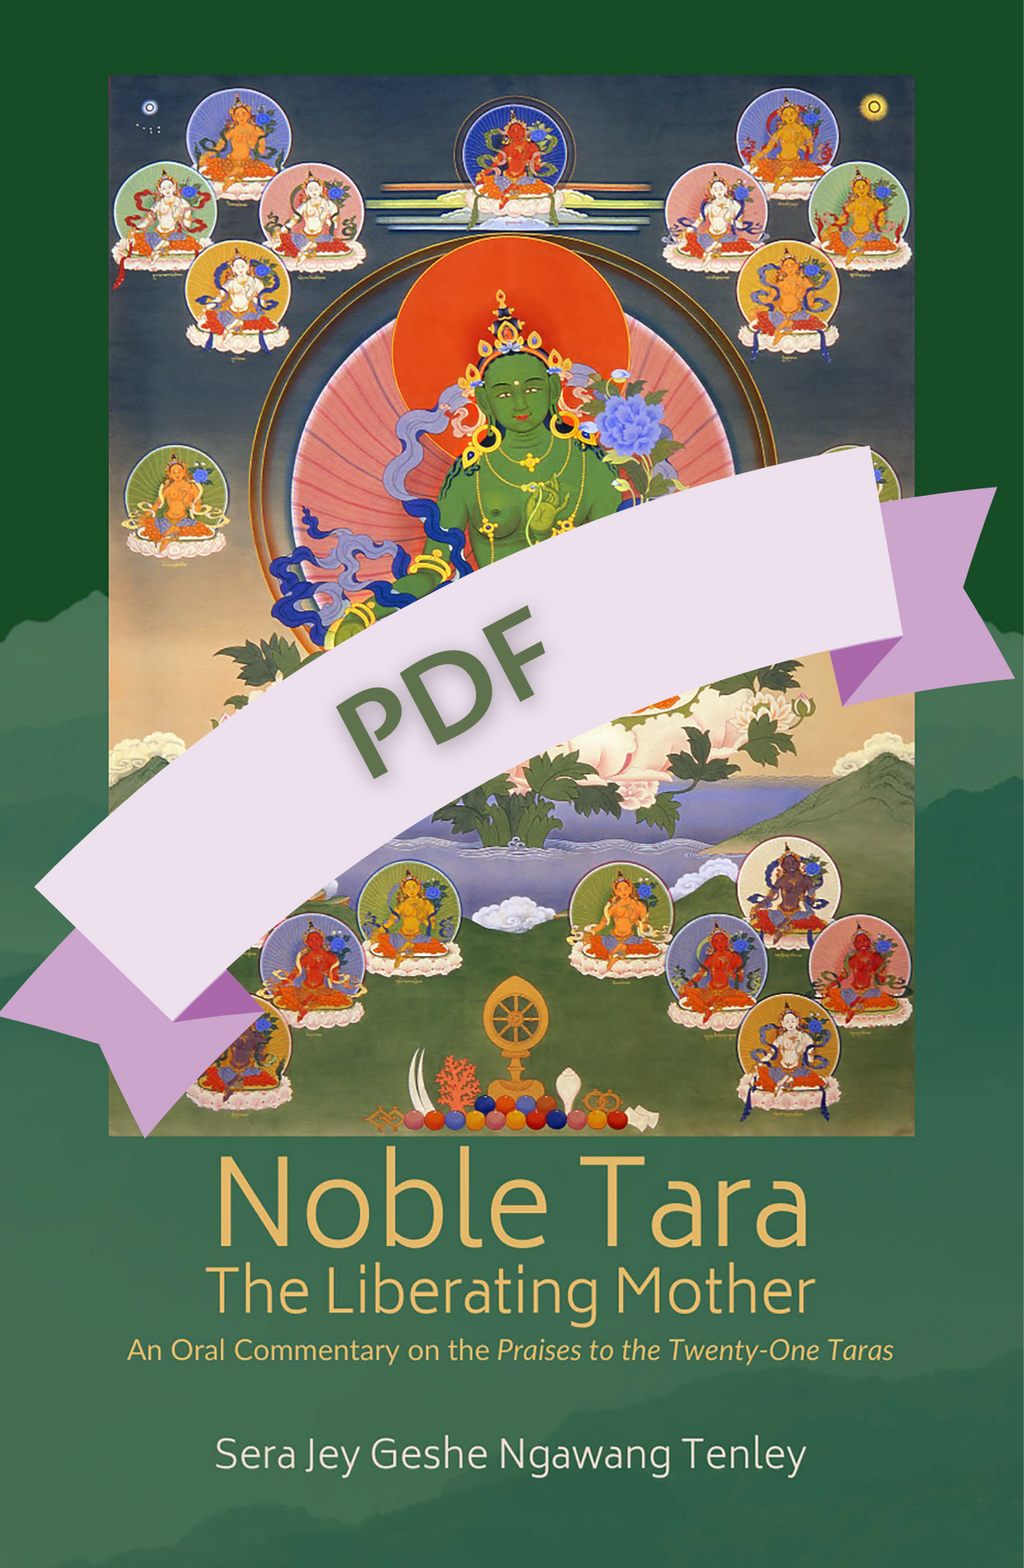 """Noble Tara, The Liberating Mother"" by Sera Jey Geshe Ngawang Tenley - PDF - Kaylo Books"